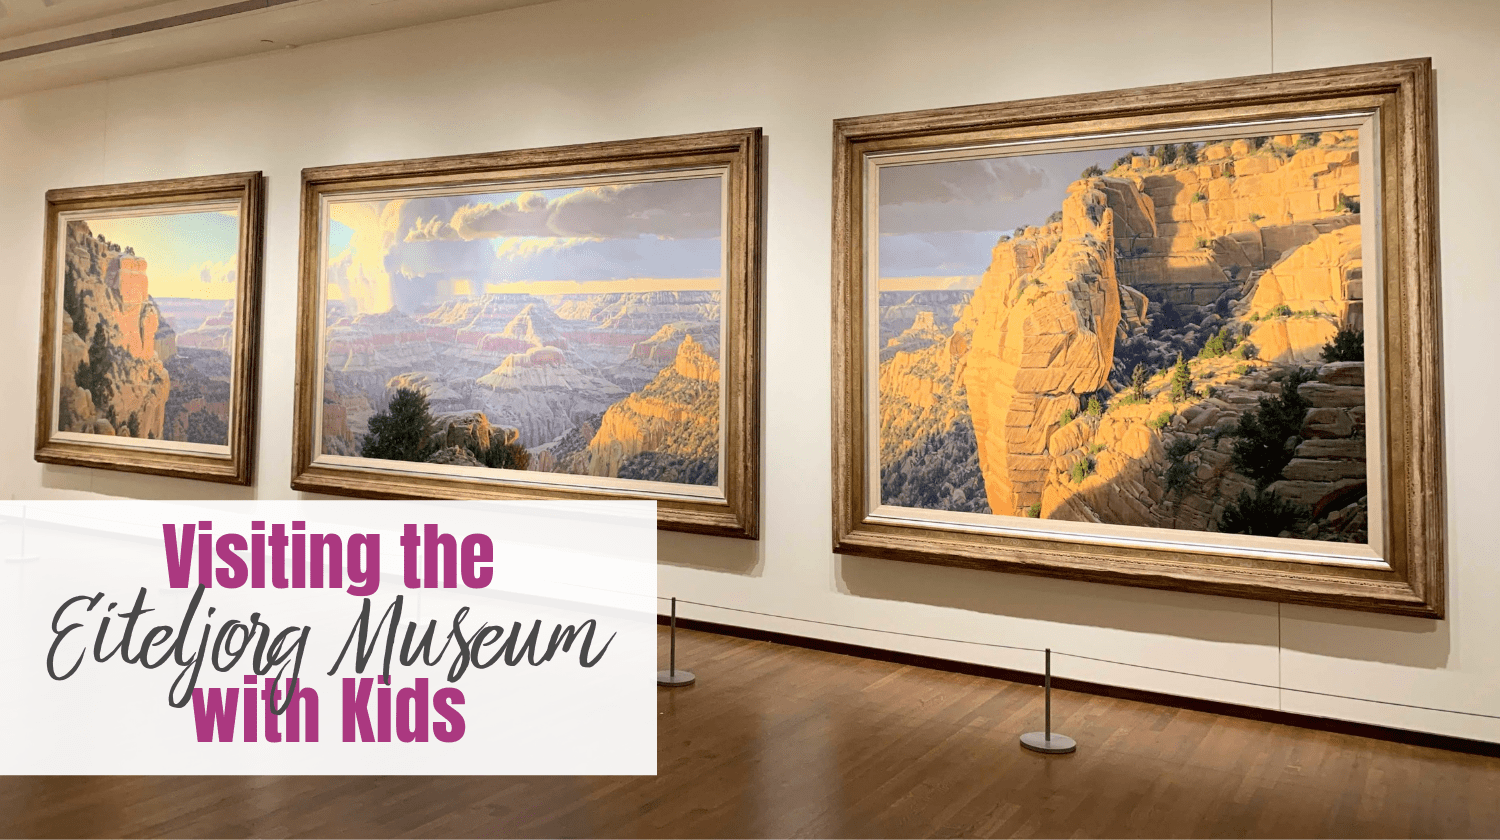 Eiteljorg Museum with Kids - Feature Image